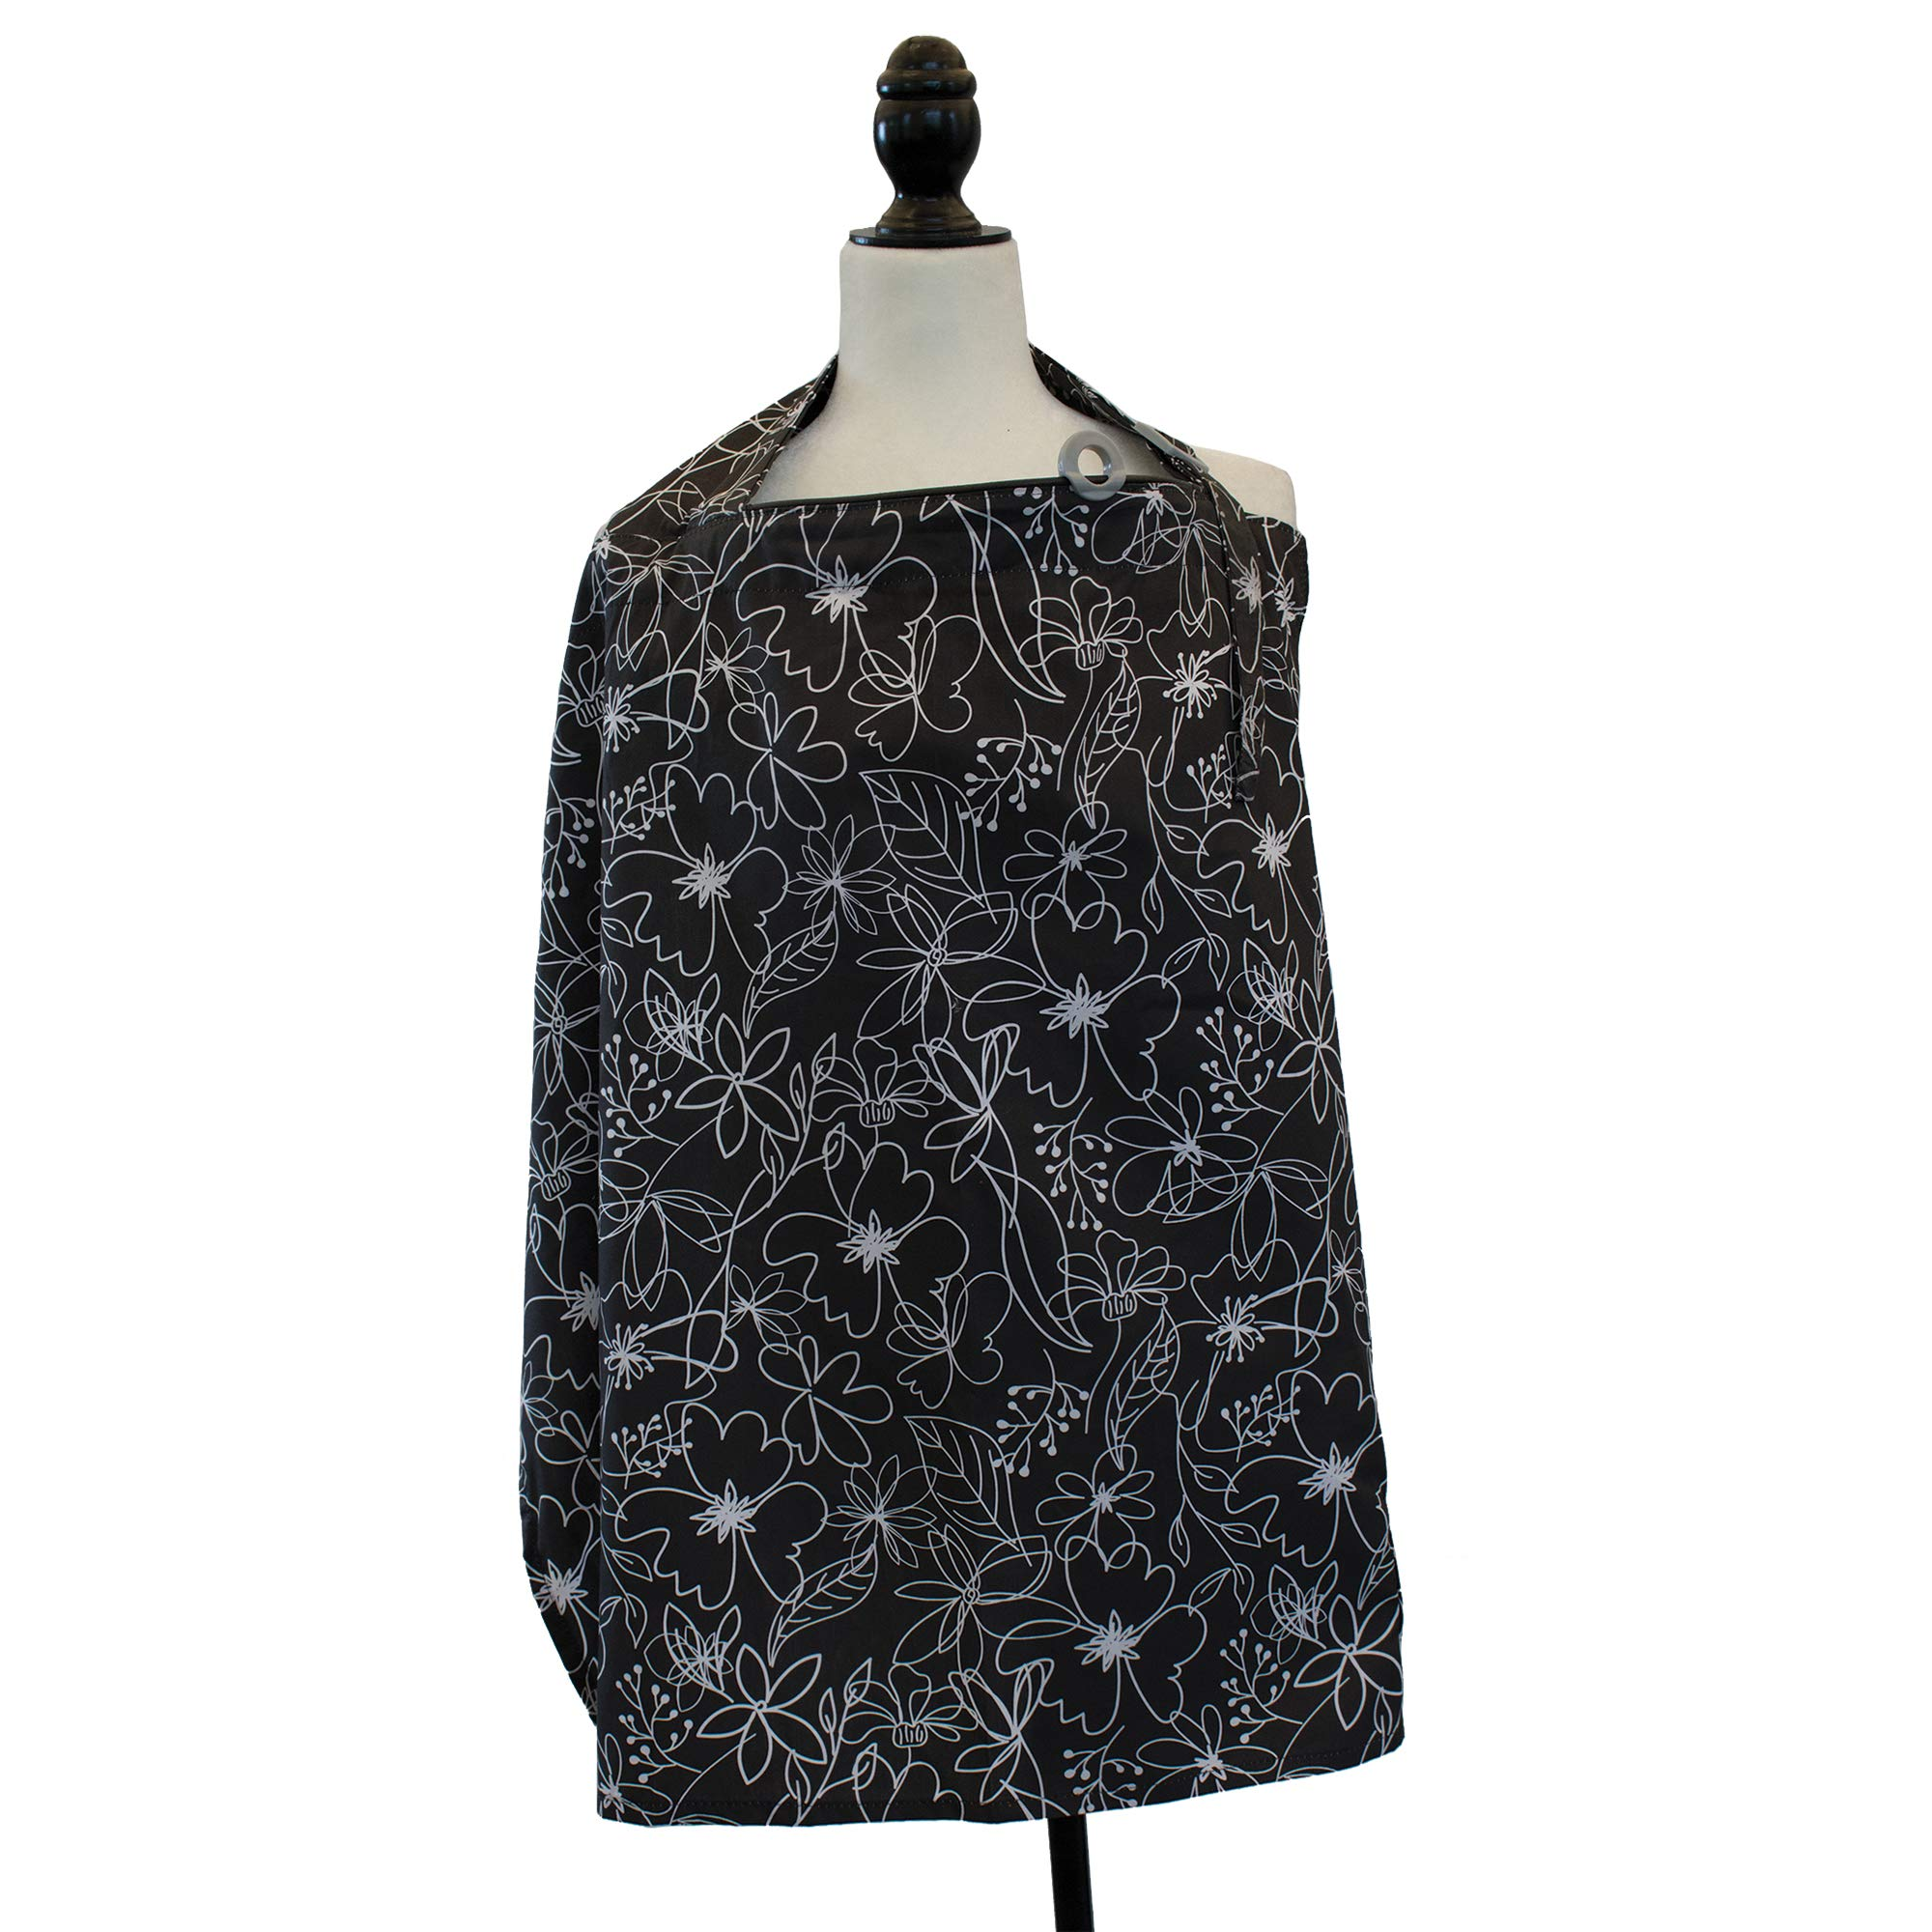 Boppy Nursing Cover, Black and White Floral Scribbles